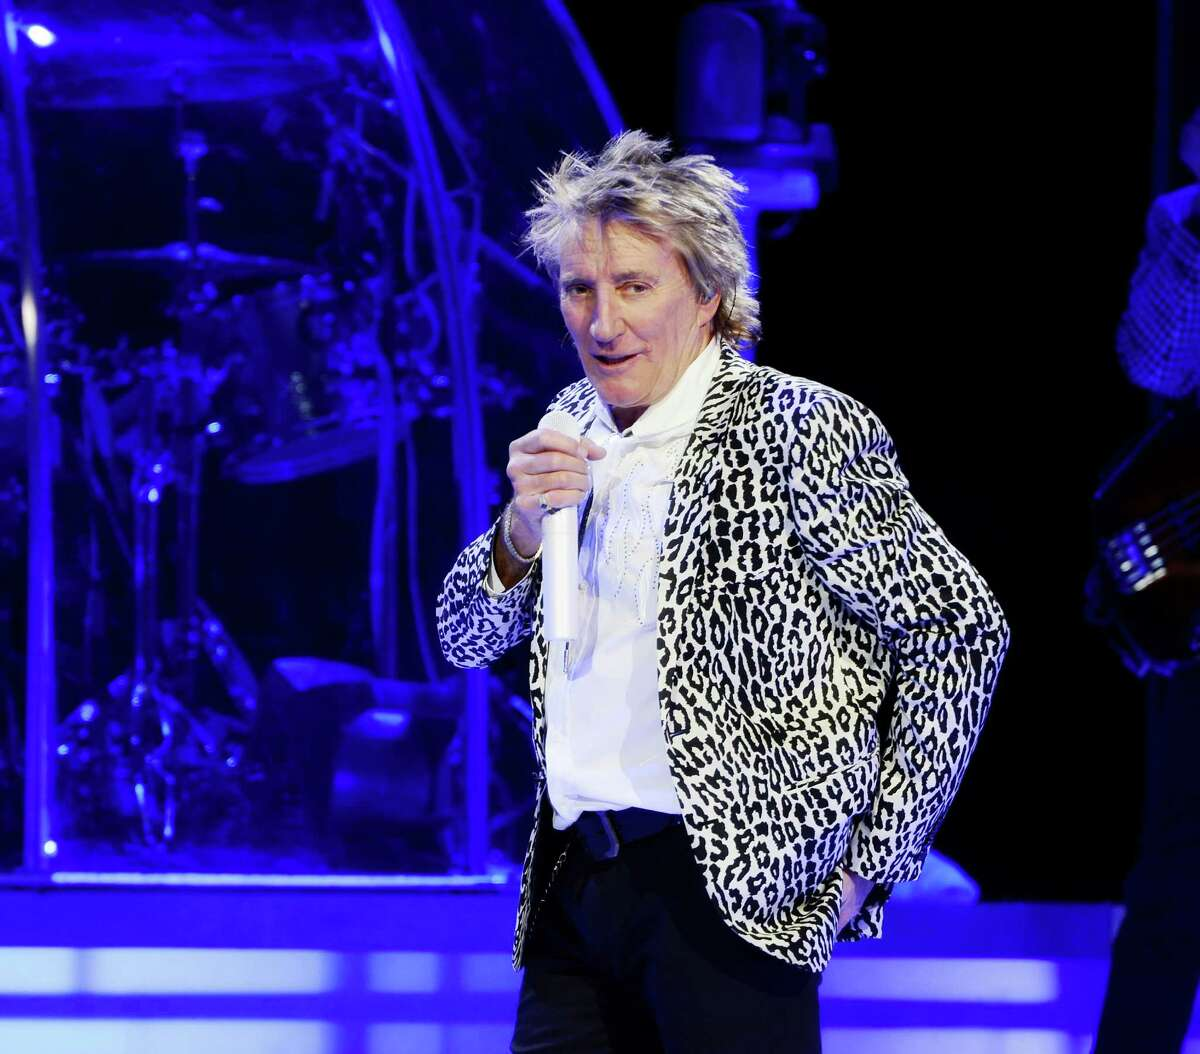 Rod Stewart has set a date for his upcoming concert in The Woodlands. NEXT: Houston's most anticipated concerts of 2020